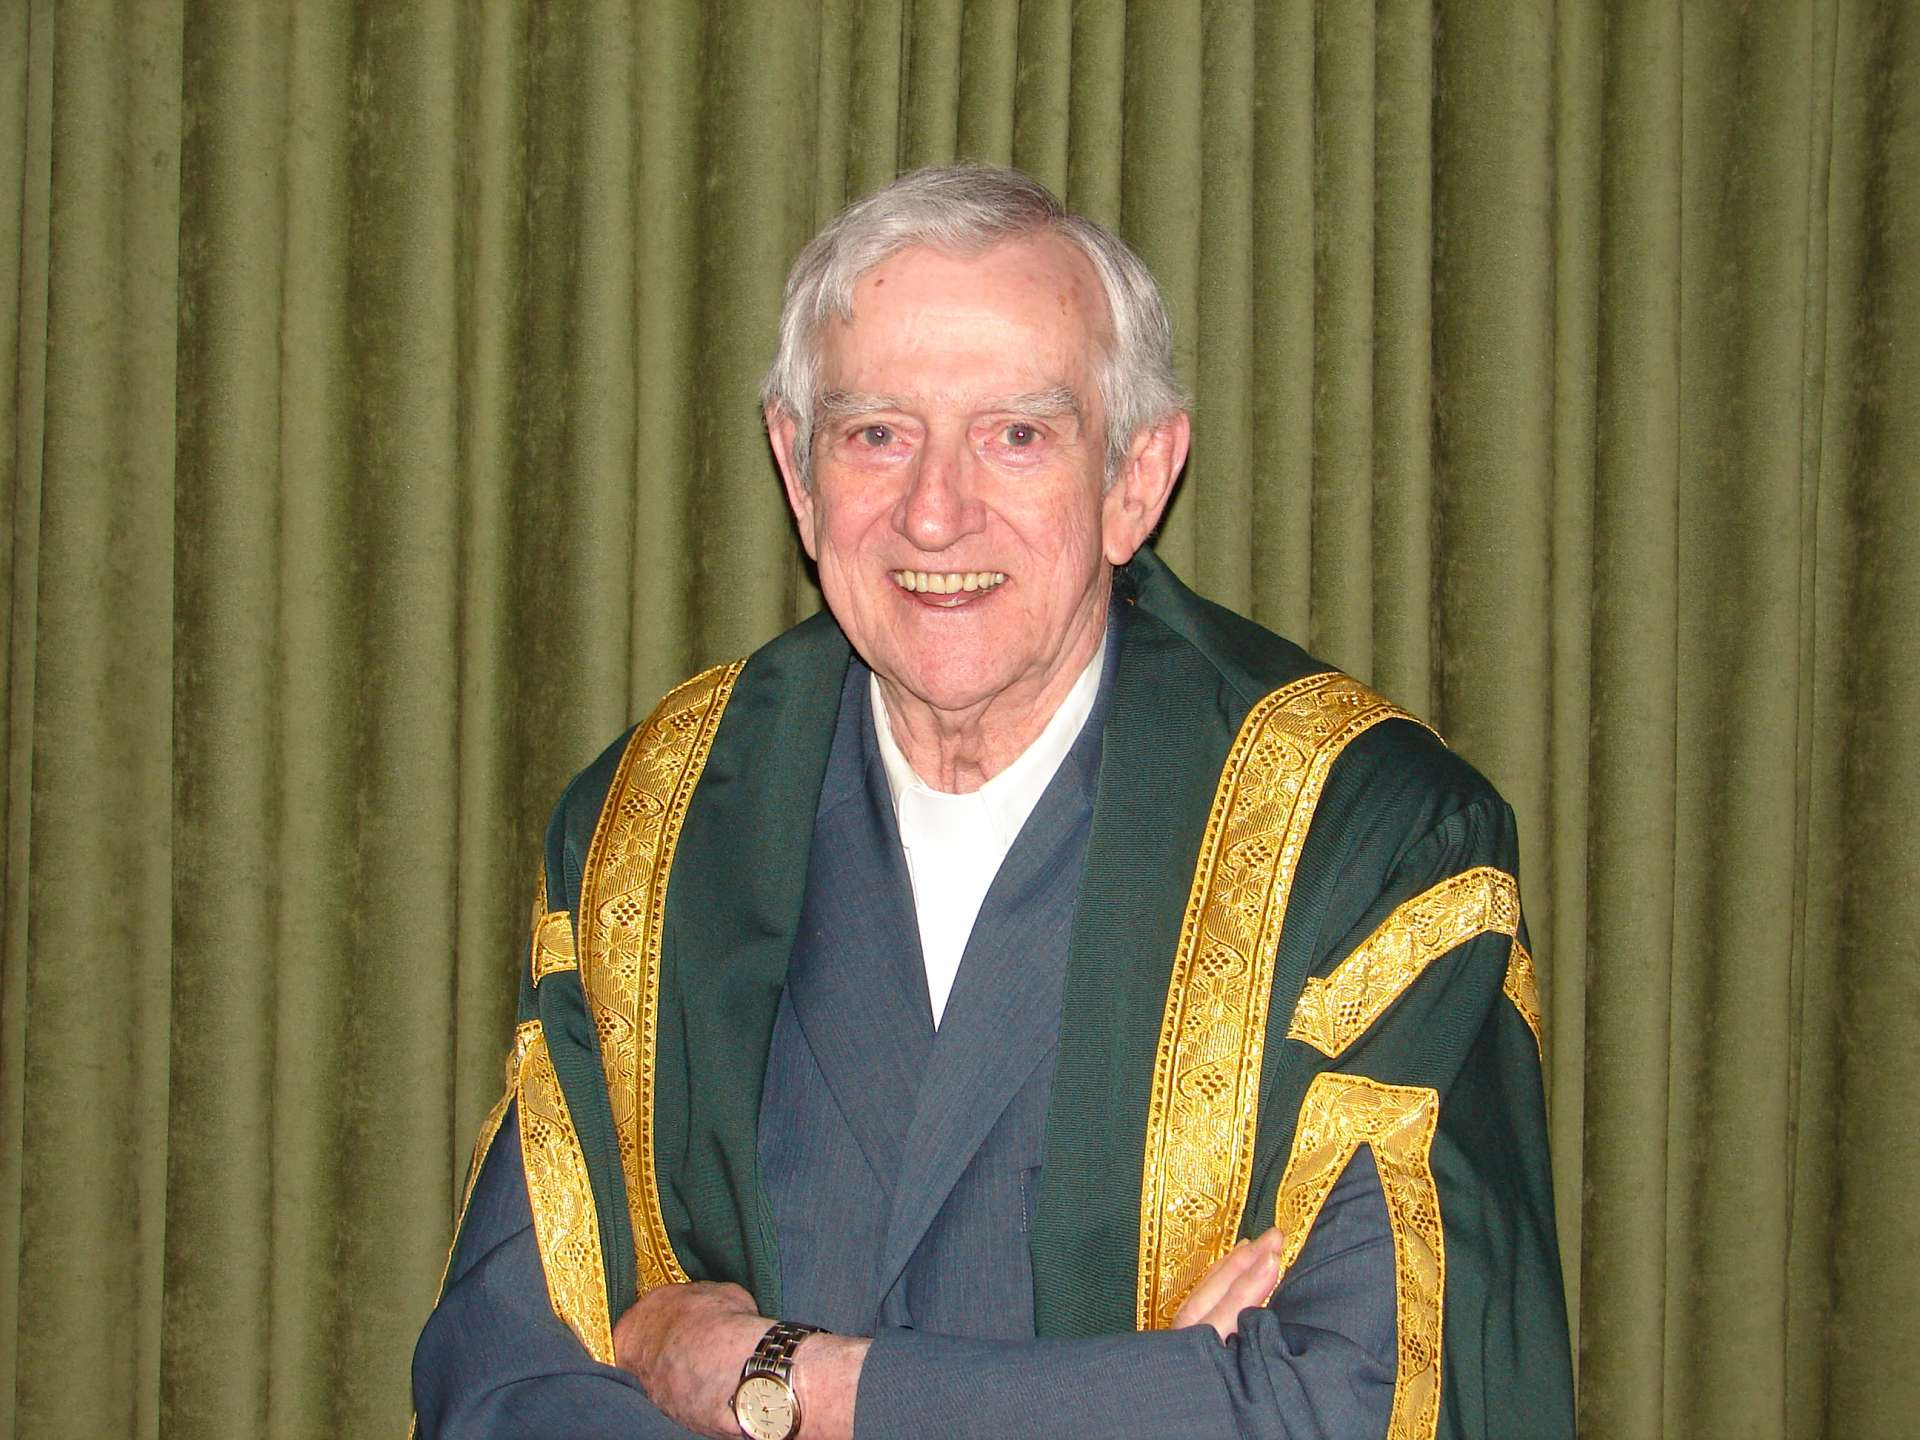 News Release - In Memory of Rev. Dr. Murray Arnill